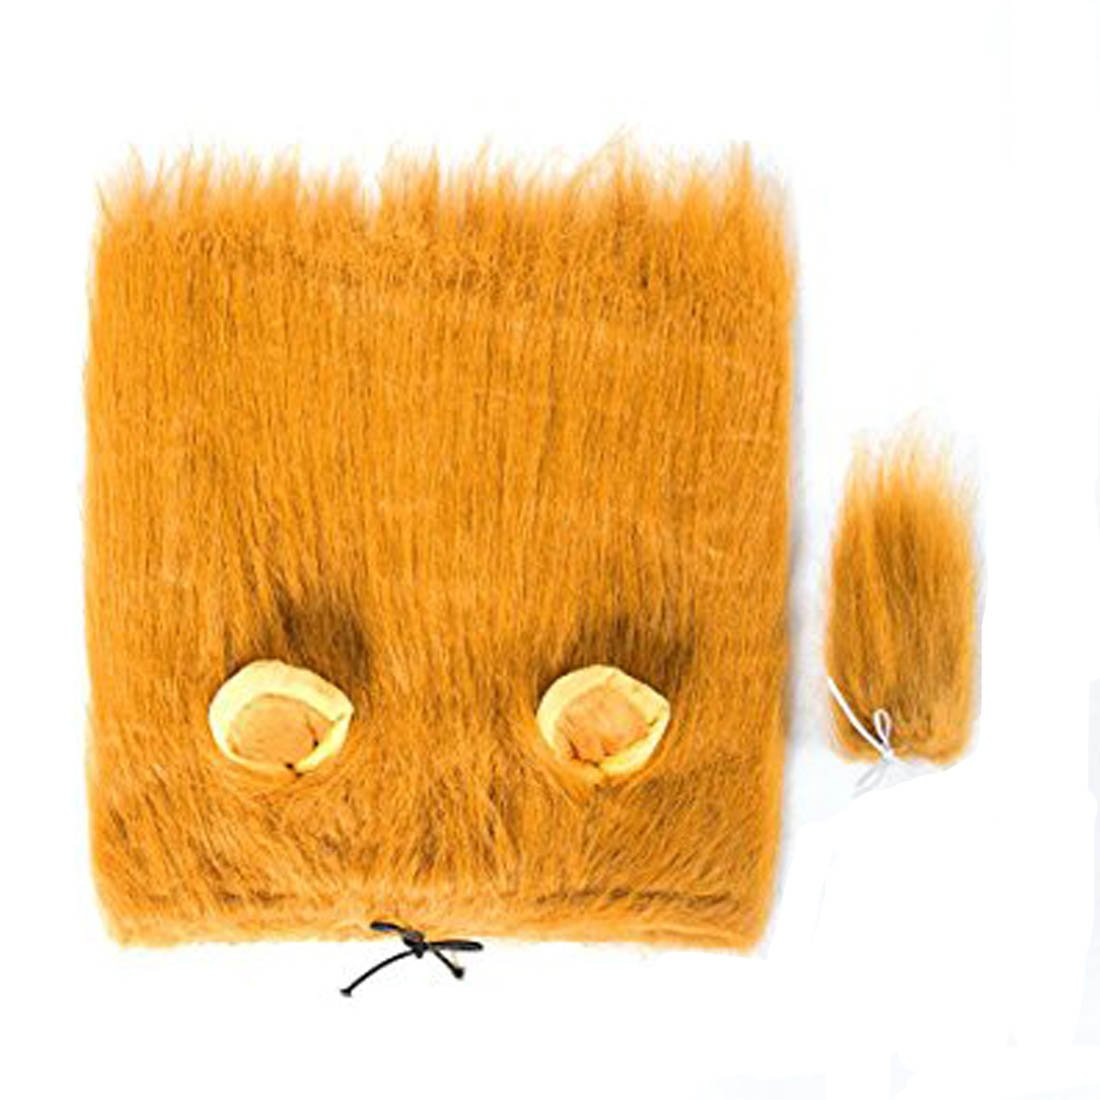 Light Brown M Light Brown M Dog Lion Mane Custume, Dog Lion Wig Hat with Ears & Tail for Halloween Festival Party (M, Light Brown)